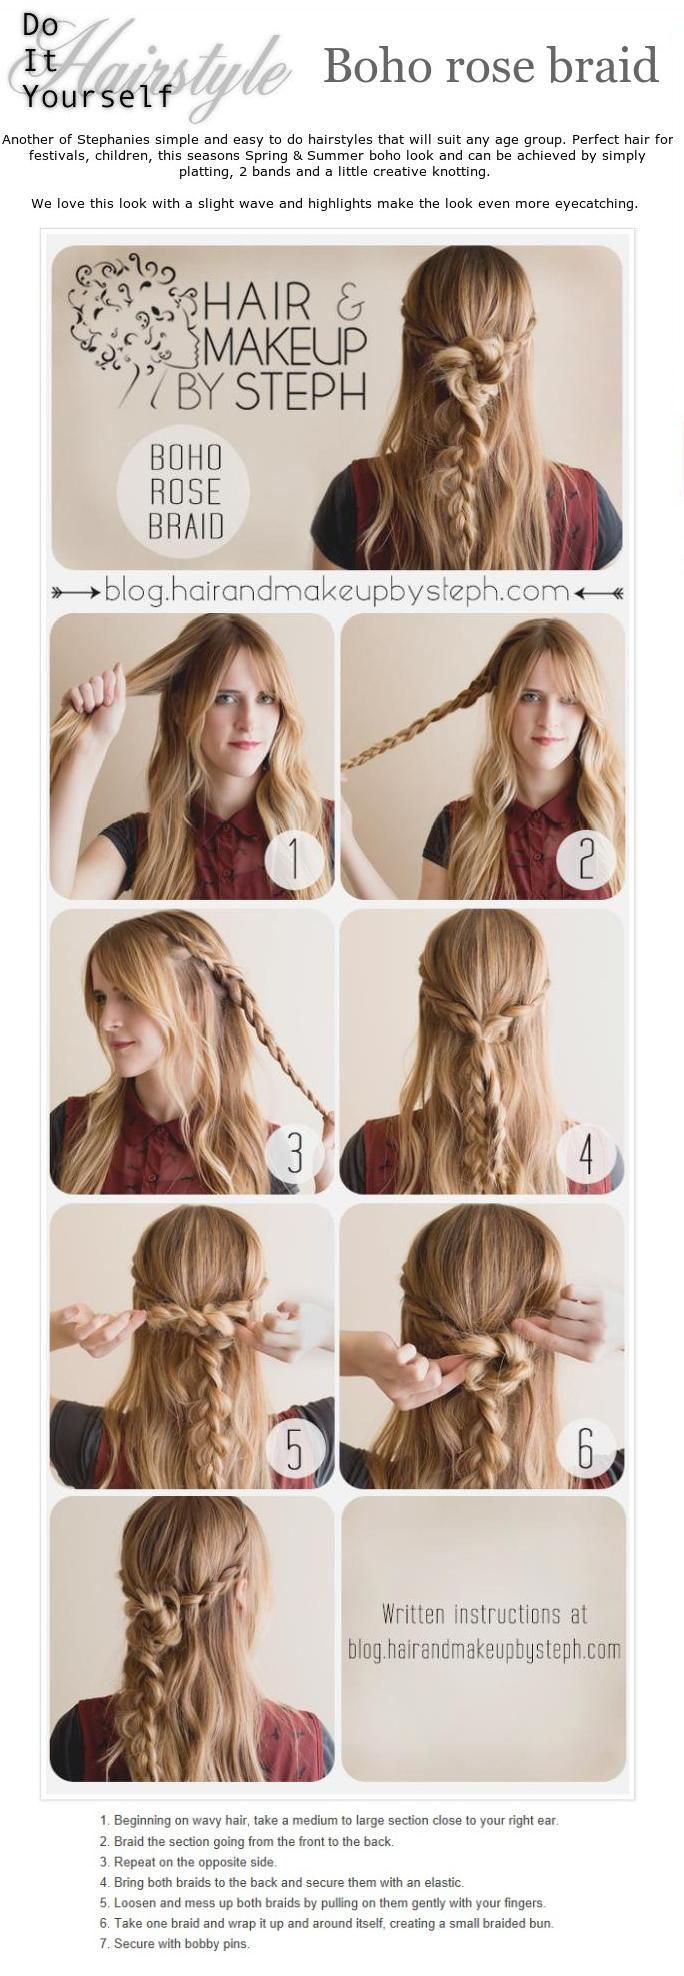 Knotted Pullback Easy Hairstyleore Hairstyles From Cuteshairstyles Com